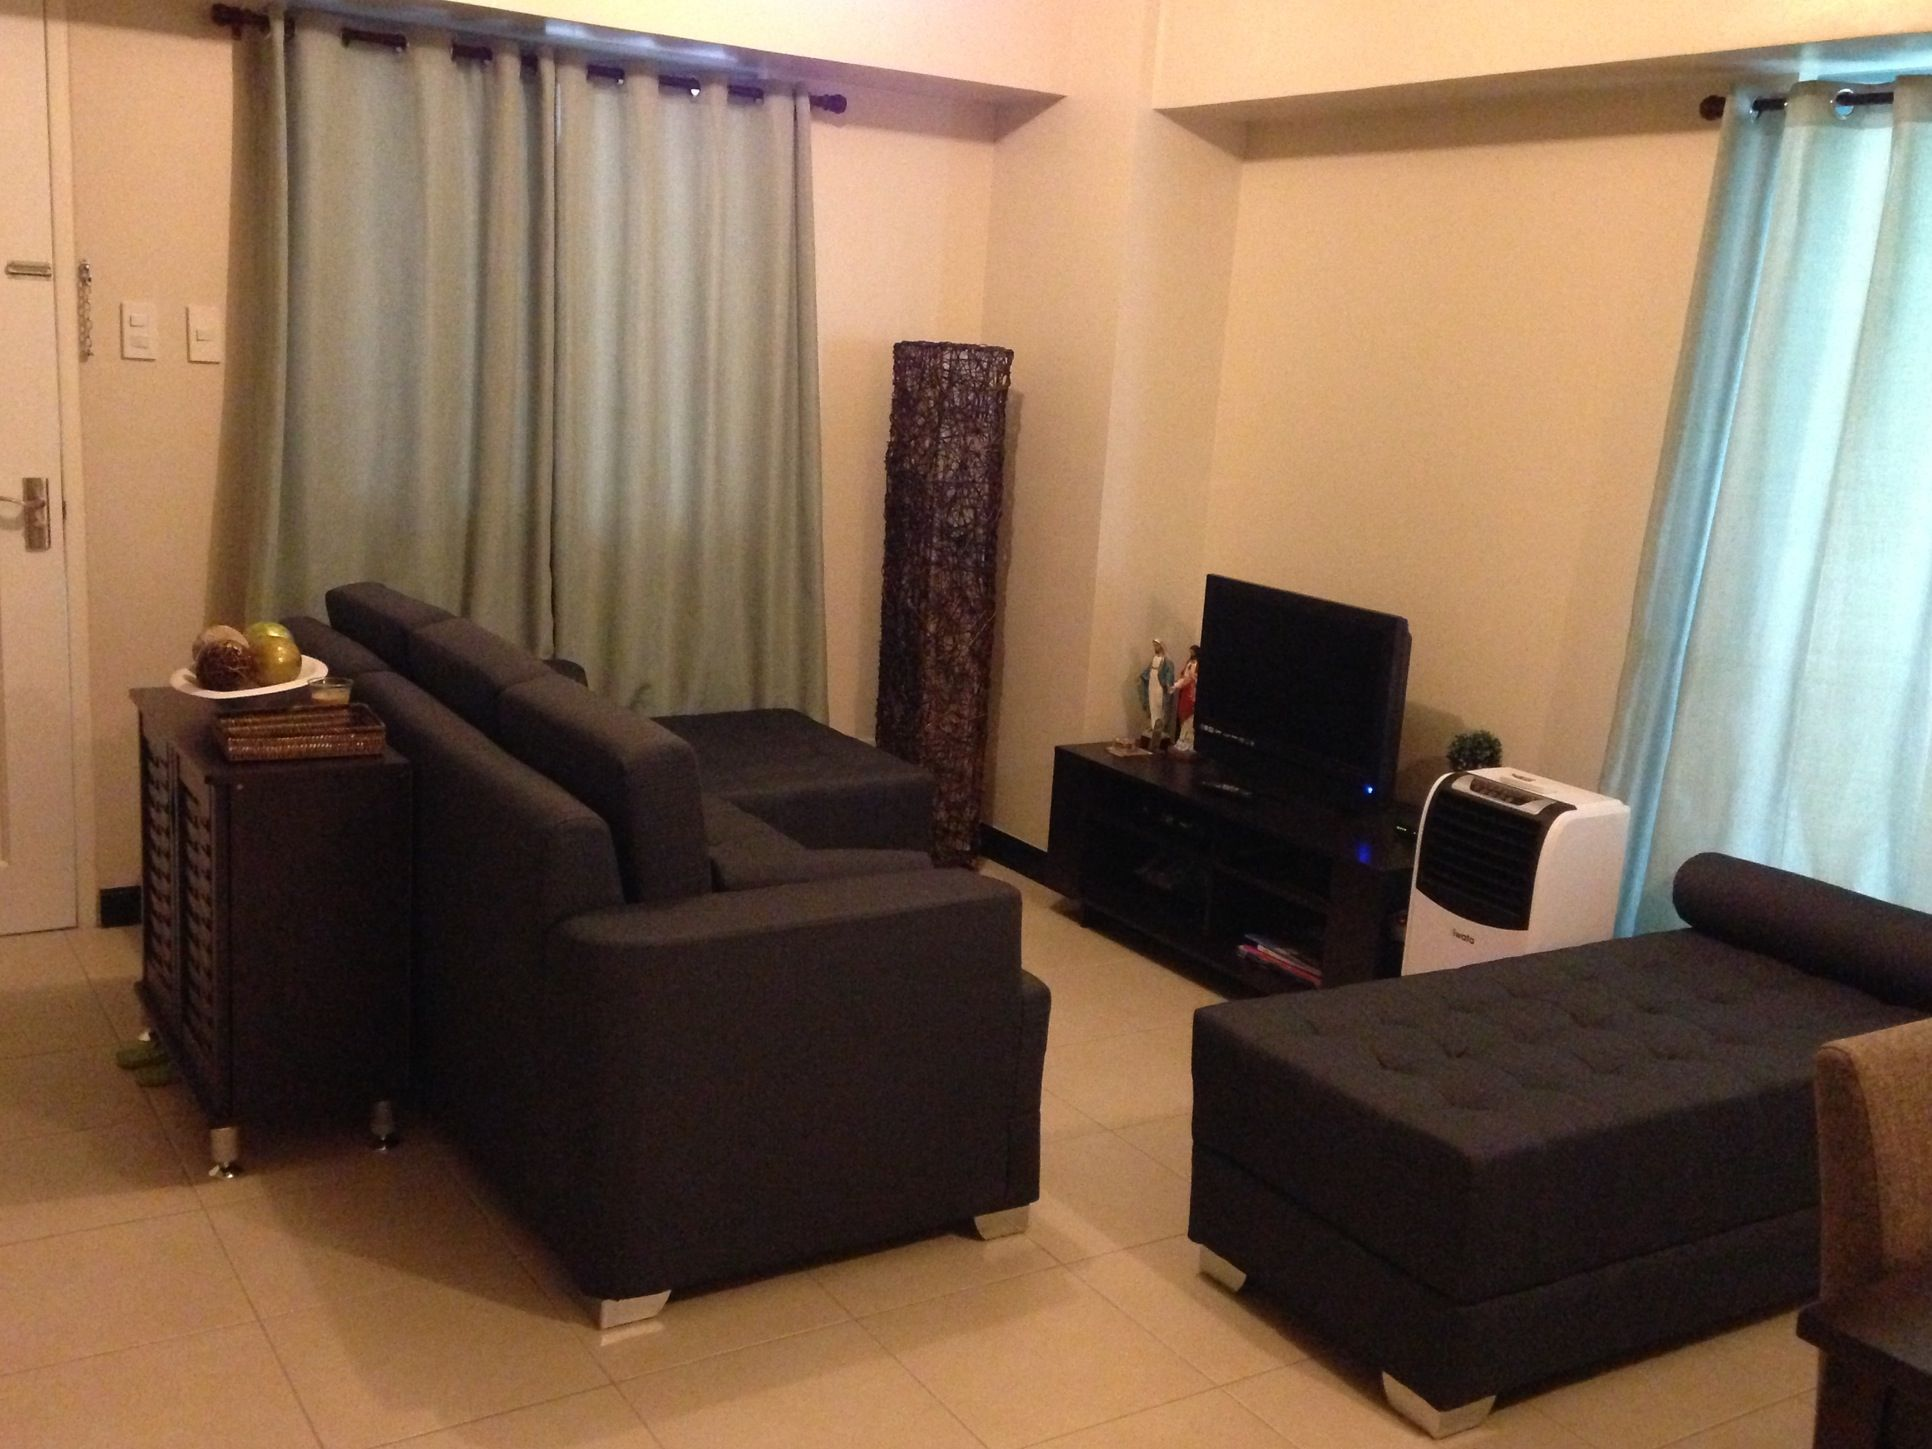 living room sofa set from Our Home SM Mall of Asia floor lamp